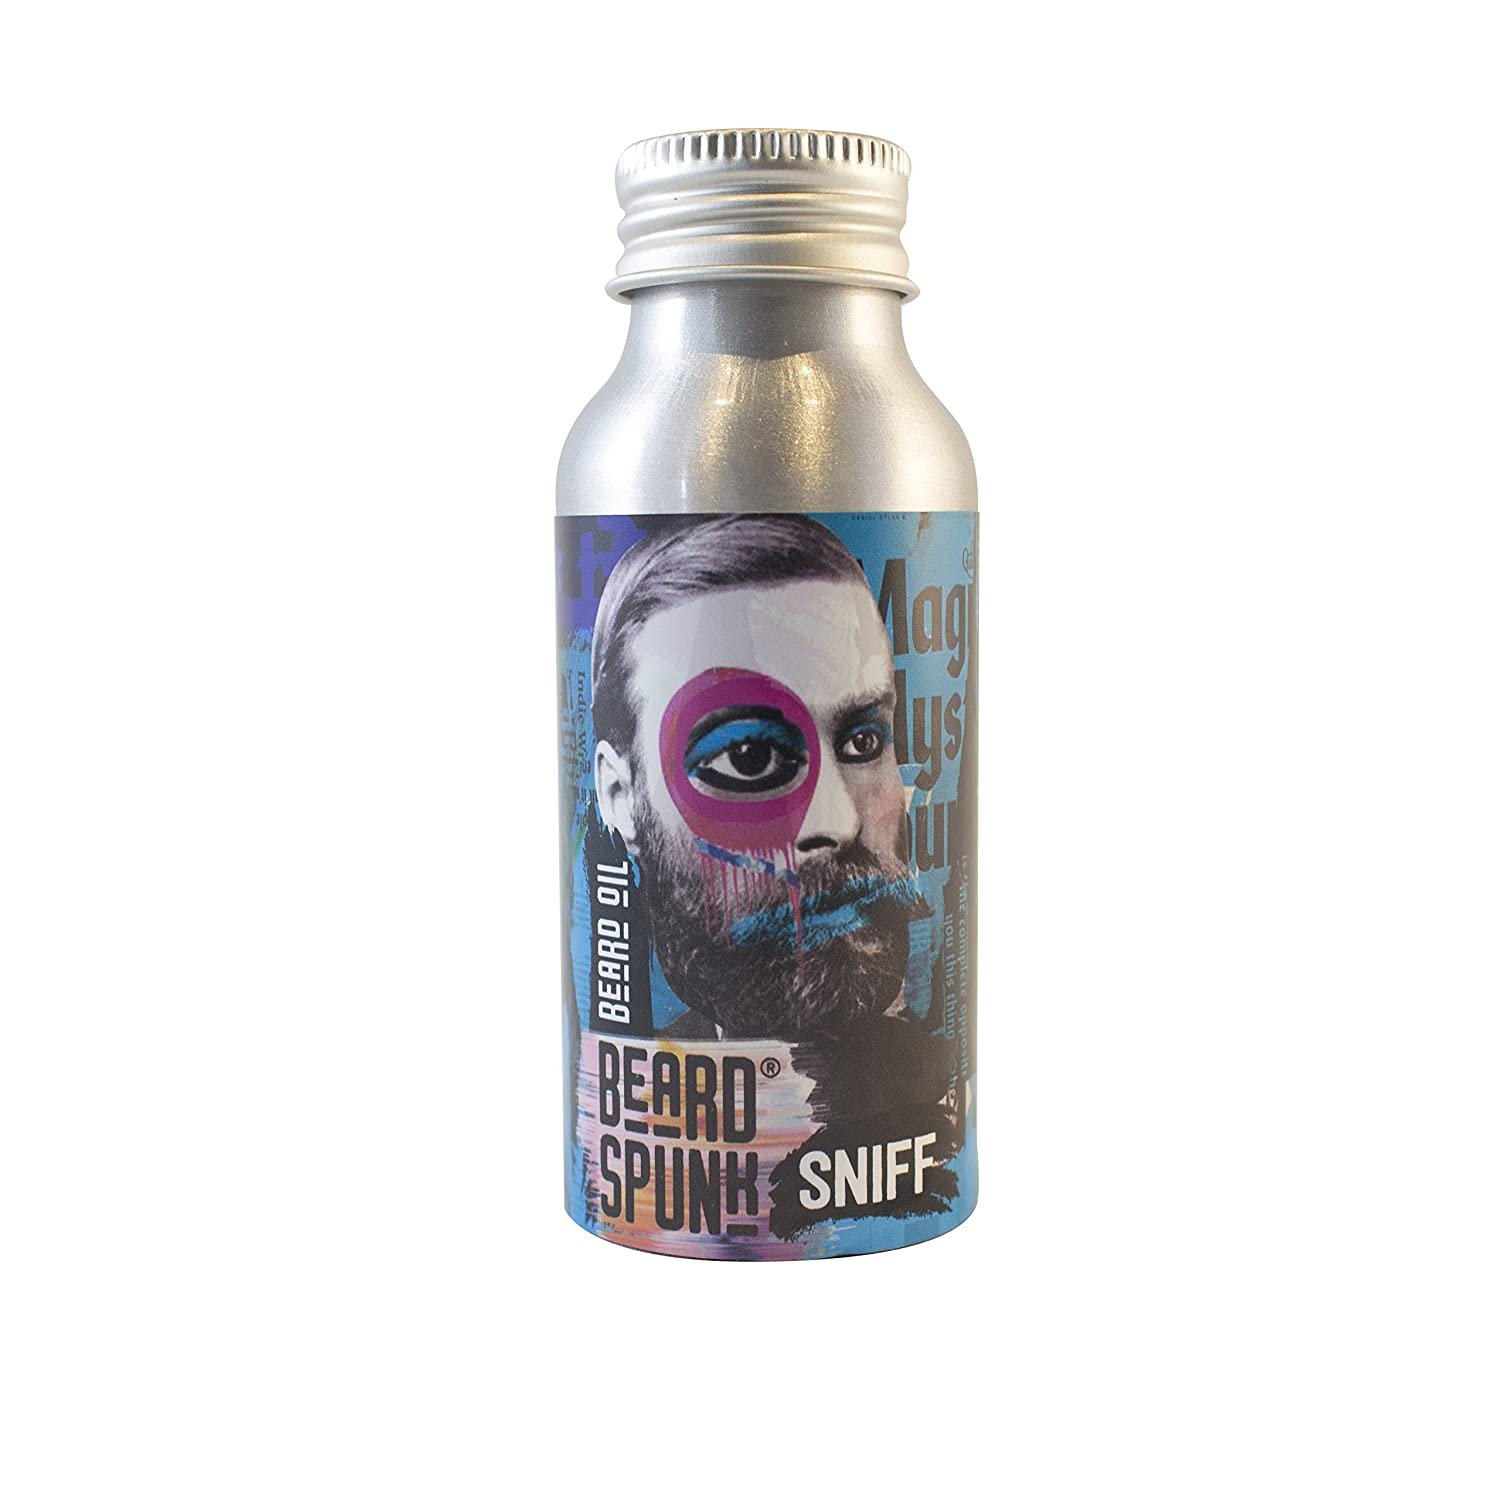 Beard Spunk SANDALWOOD Premium Beard & Moustache Oil - Large Bottle 50ml Beard Spunk ®